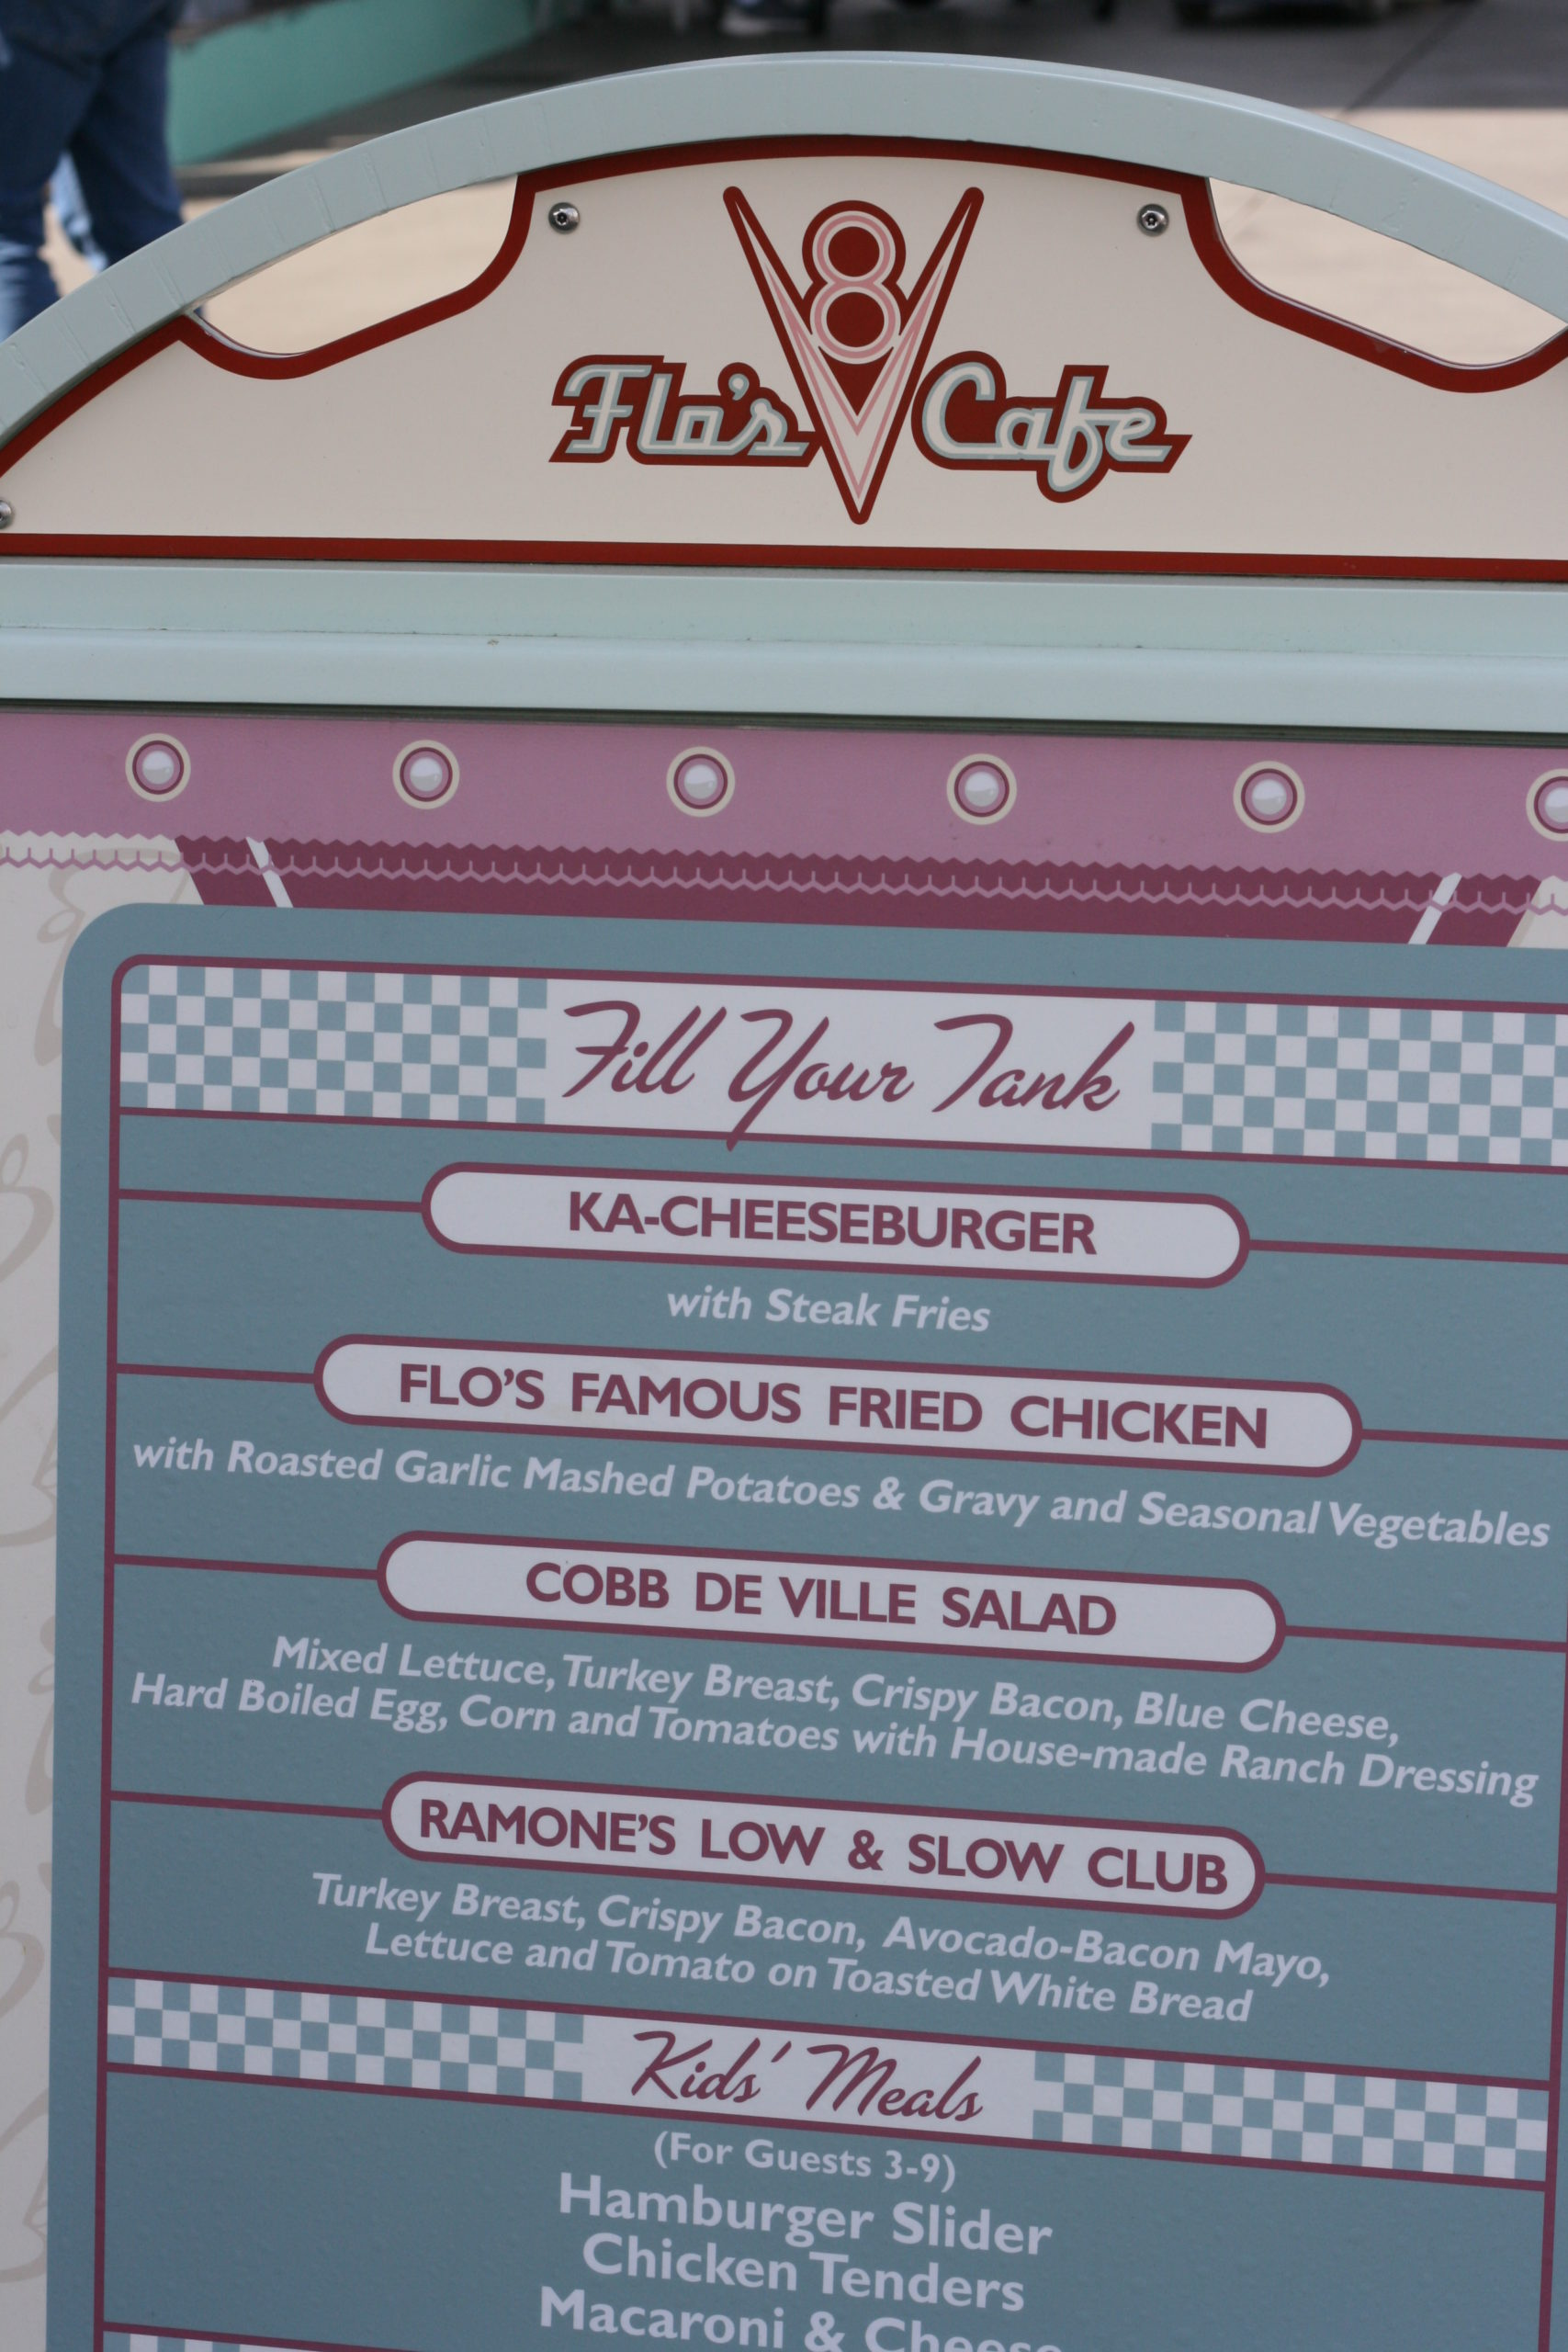 Flo's V-8 Cafe menu options at this iconic Disneyland dining center.